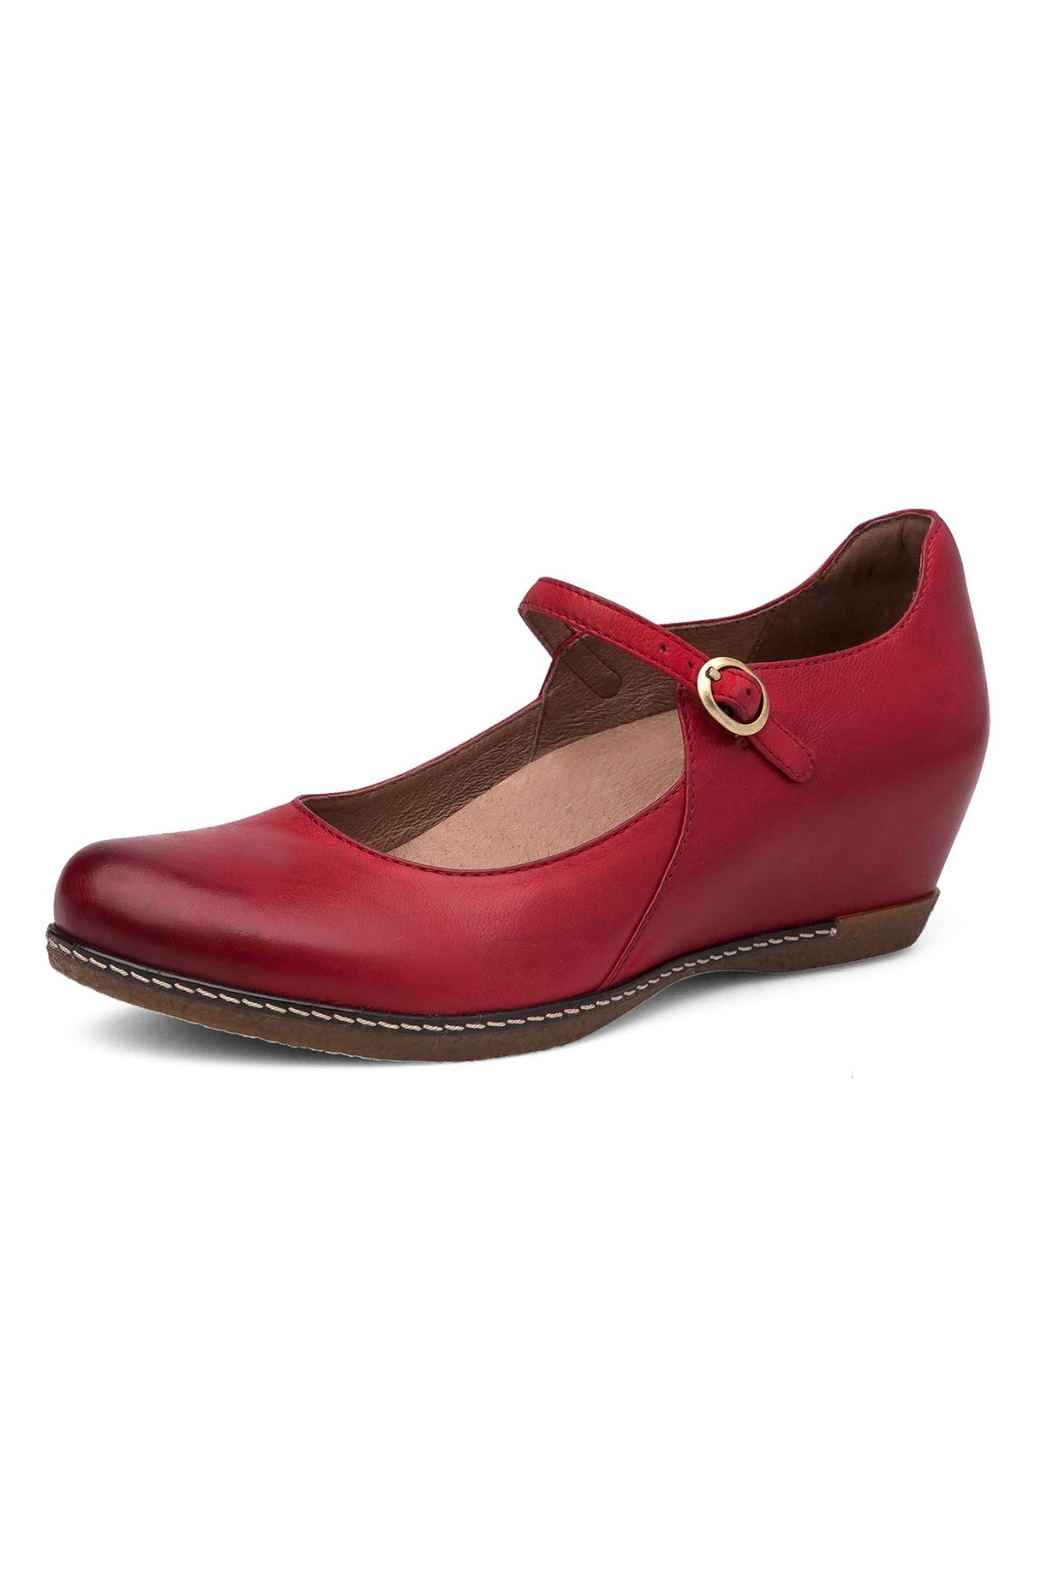 Dansko Loralie Maryjane Shoes - Main Image